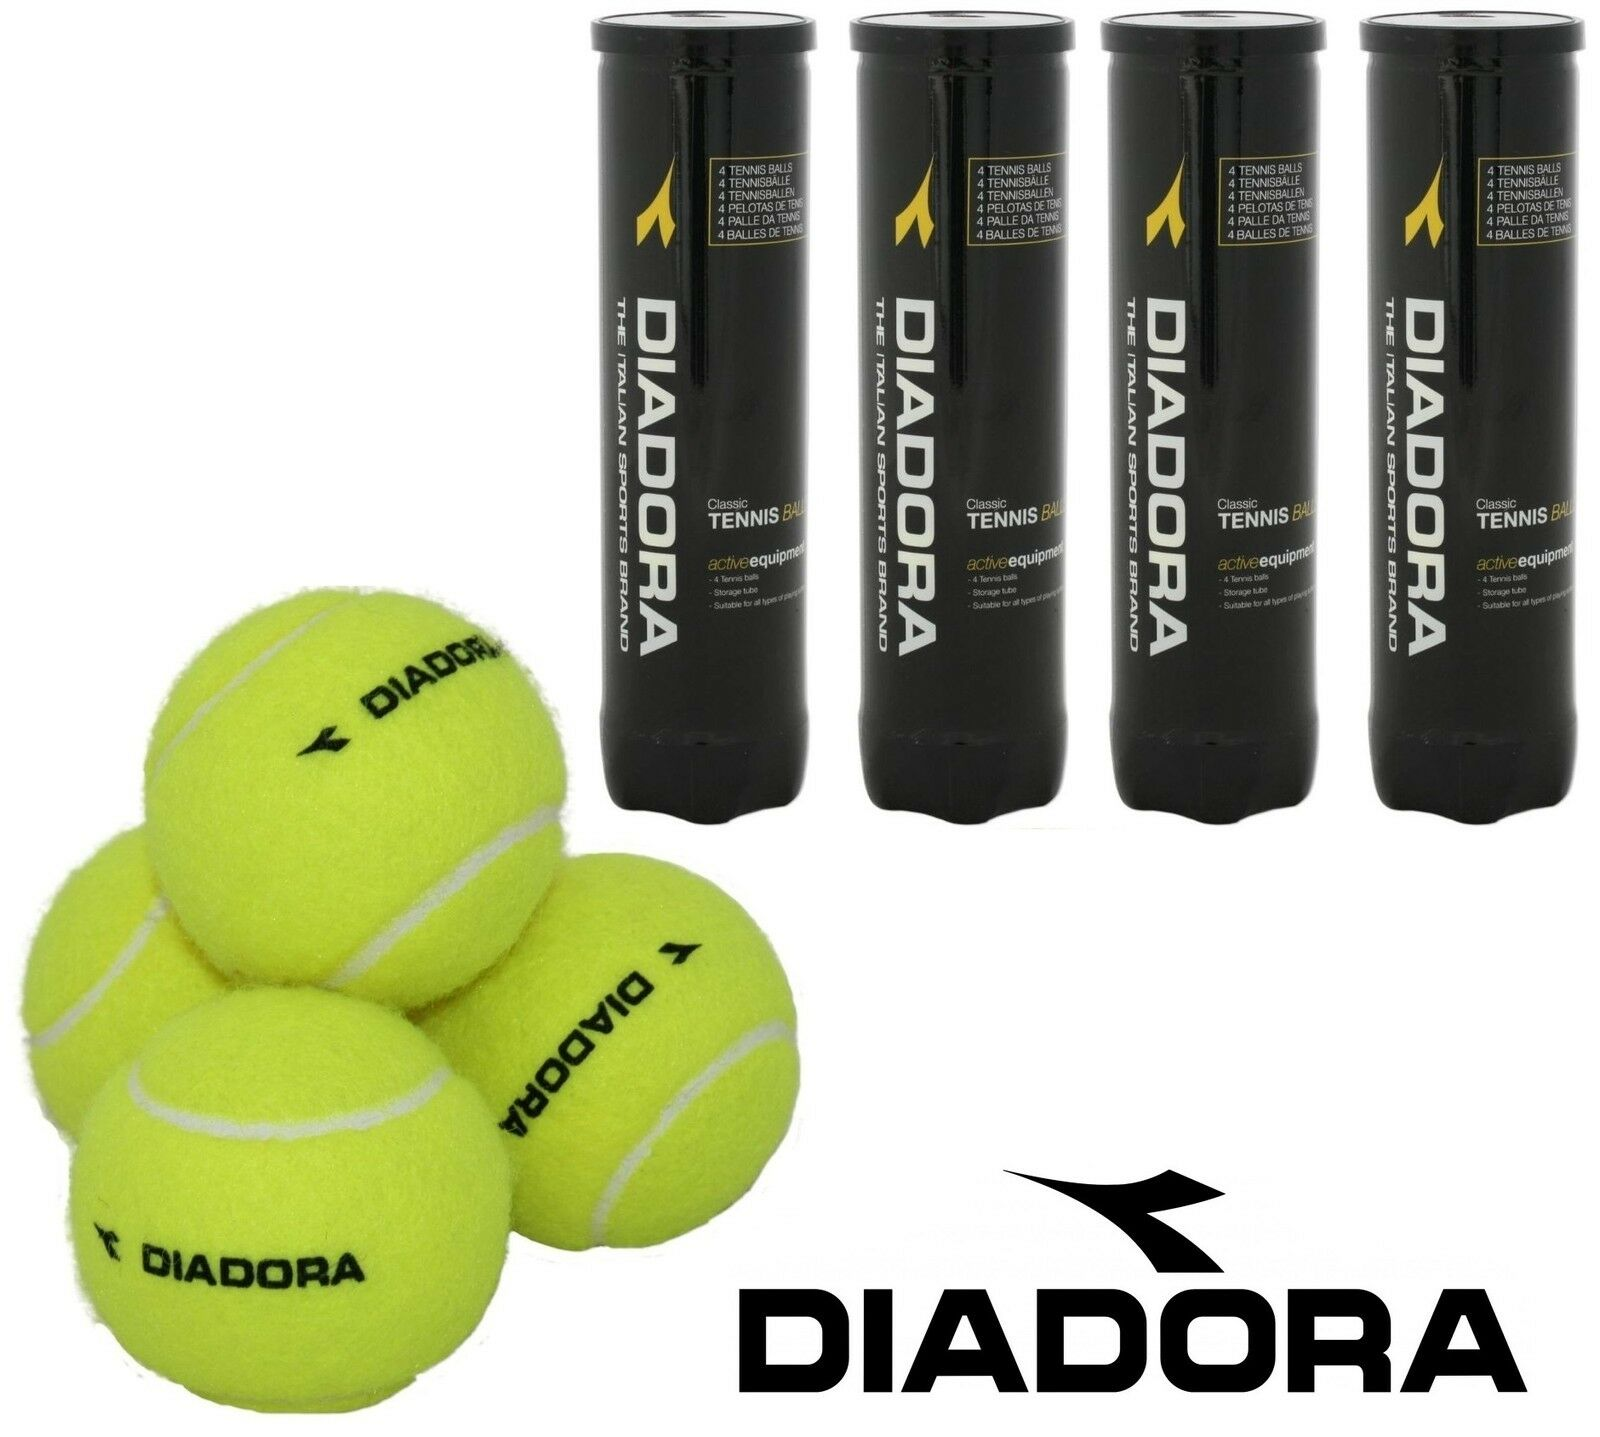 DIADORA® Tennis Balls Pressurised Sealed Storage Tube for All Surface Quality